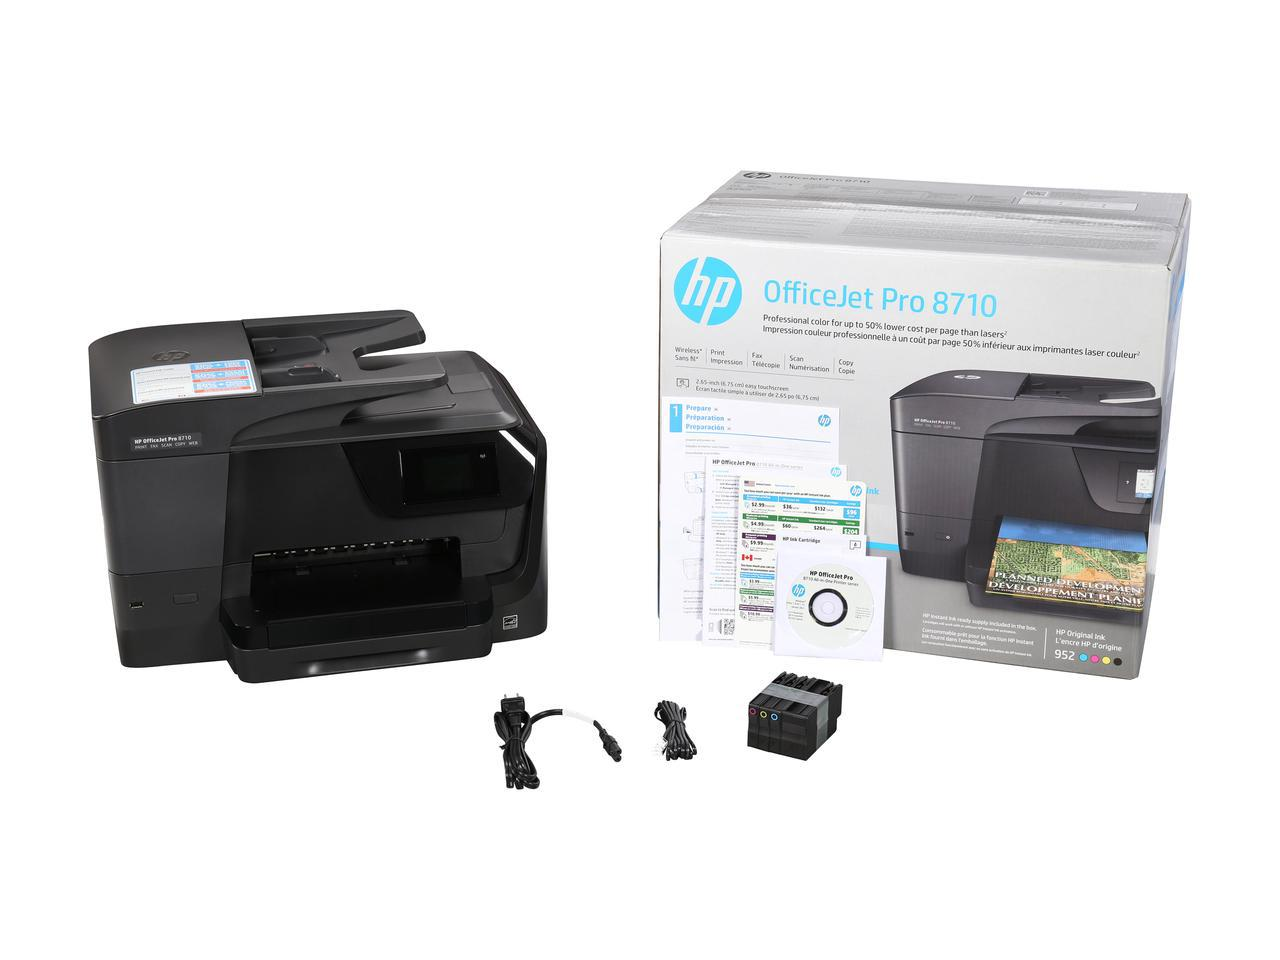 hp officejet pro 8710 all in one printer help tech co ltd